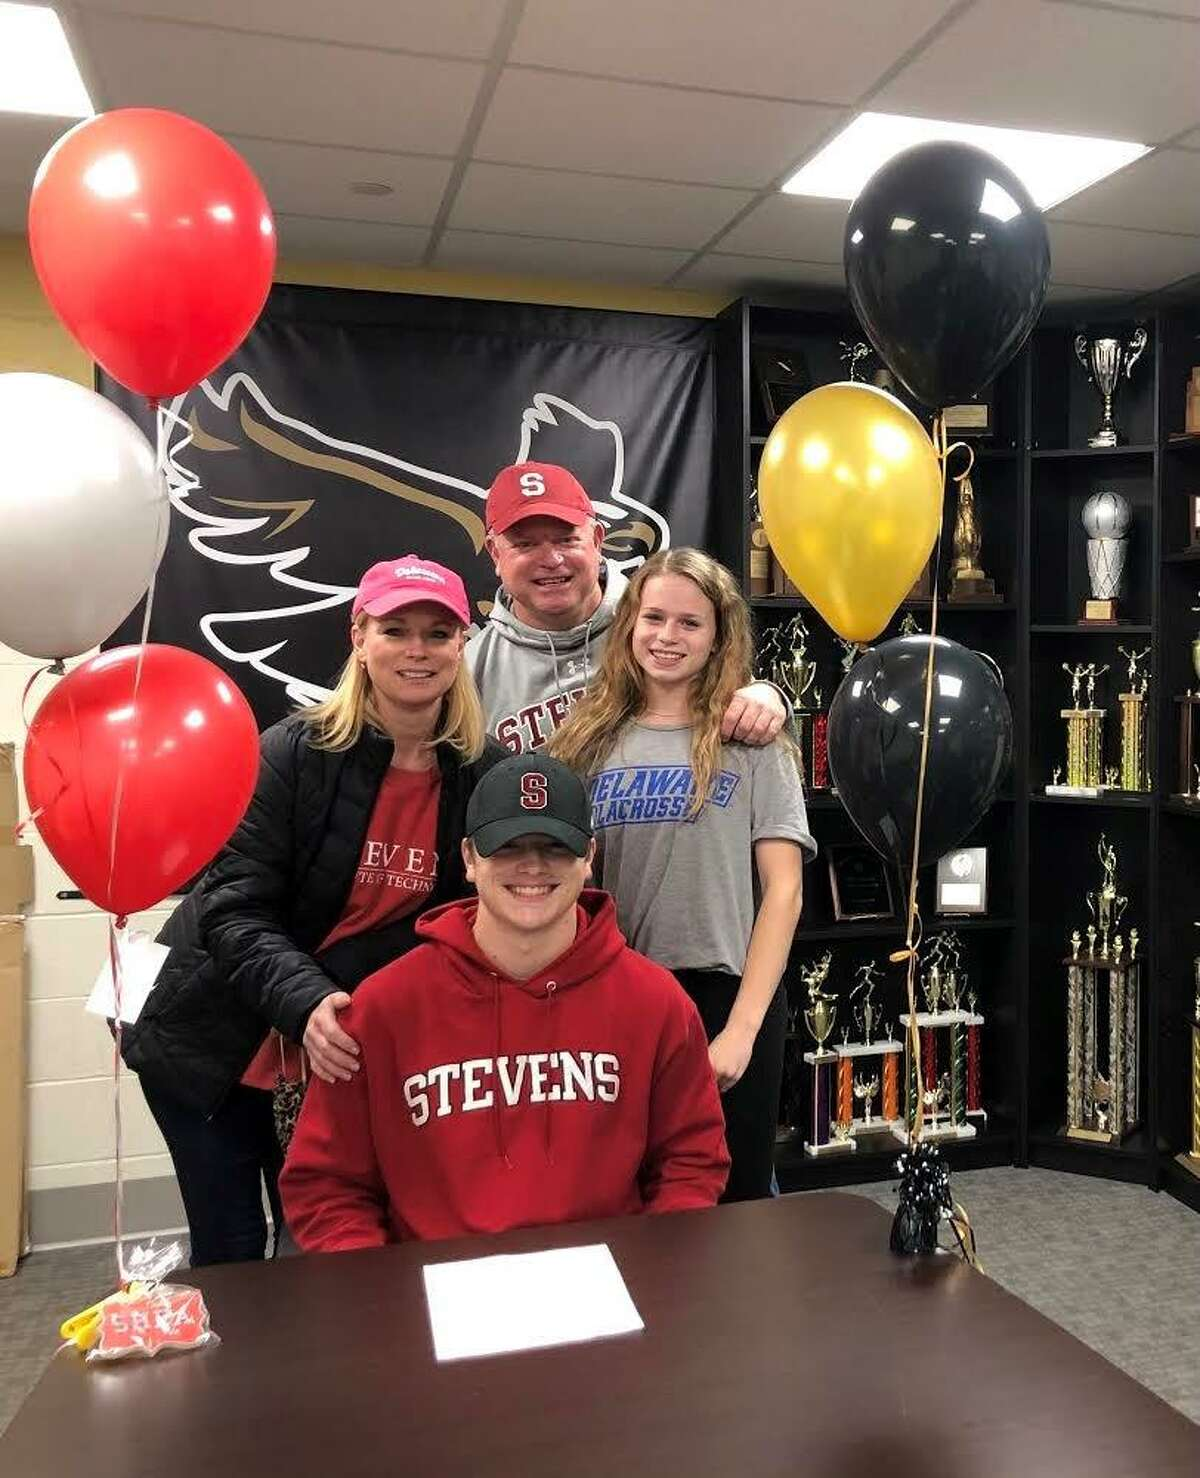 Shea Grant is surrounded by mom Stacey, dad Tim and sister Keira. He will play lacrosse at Stevens Institute of Technology. Twin sister Keira will play at the University of Delaware.